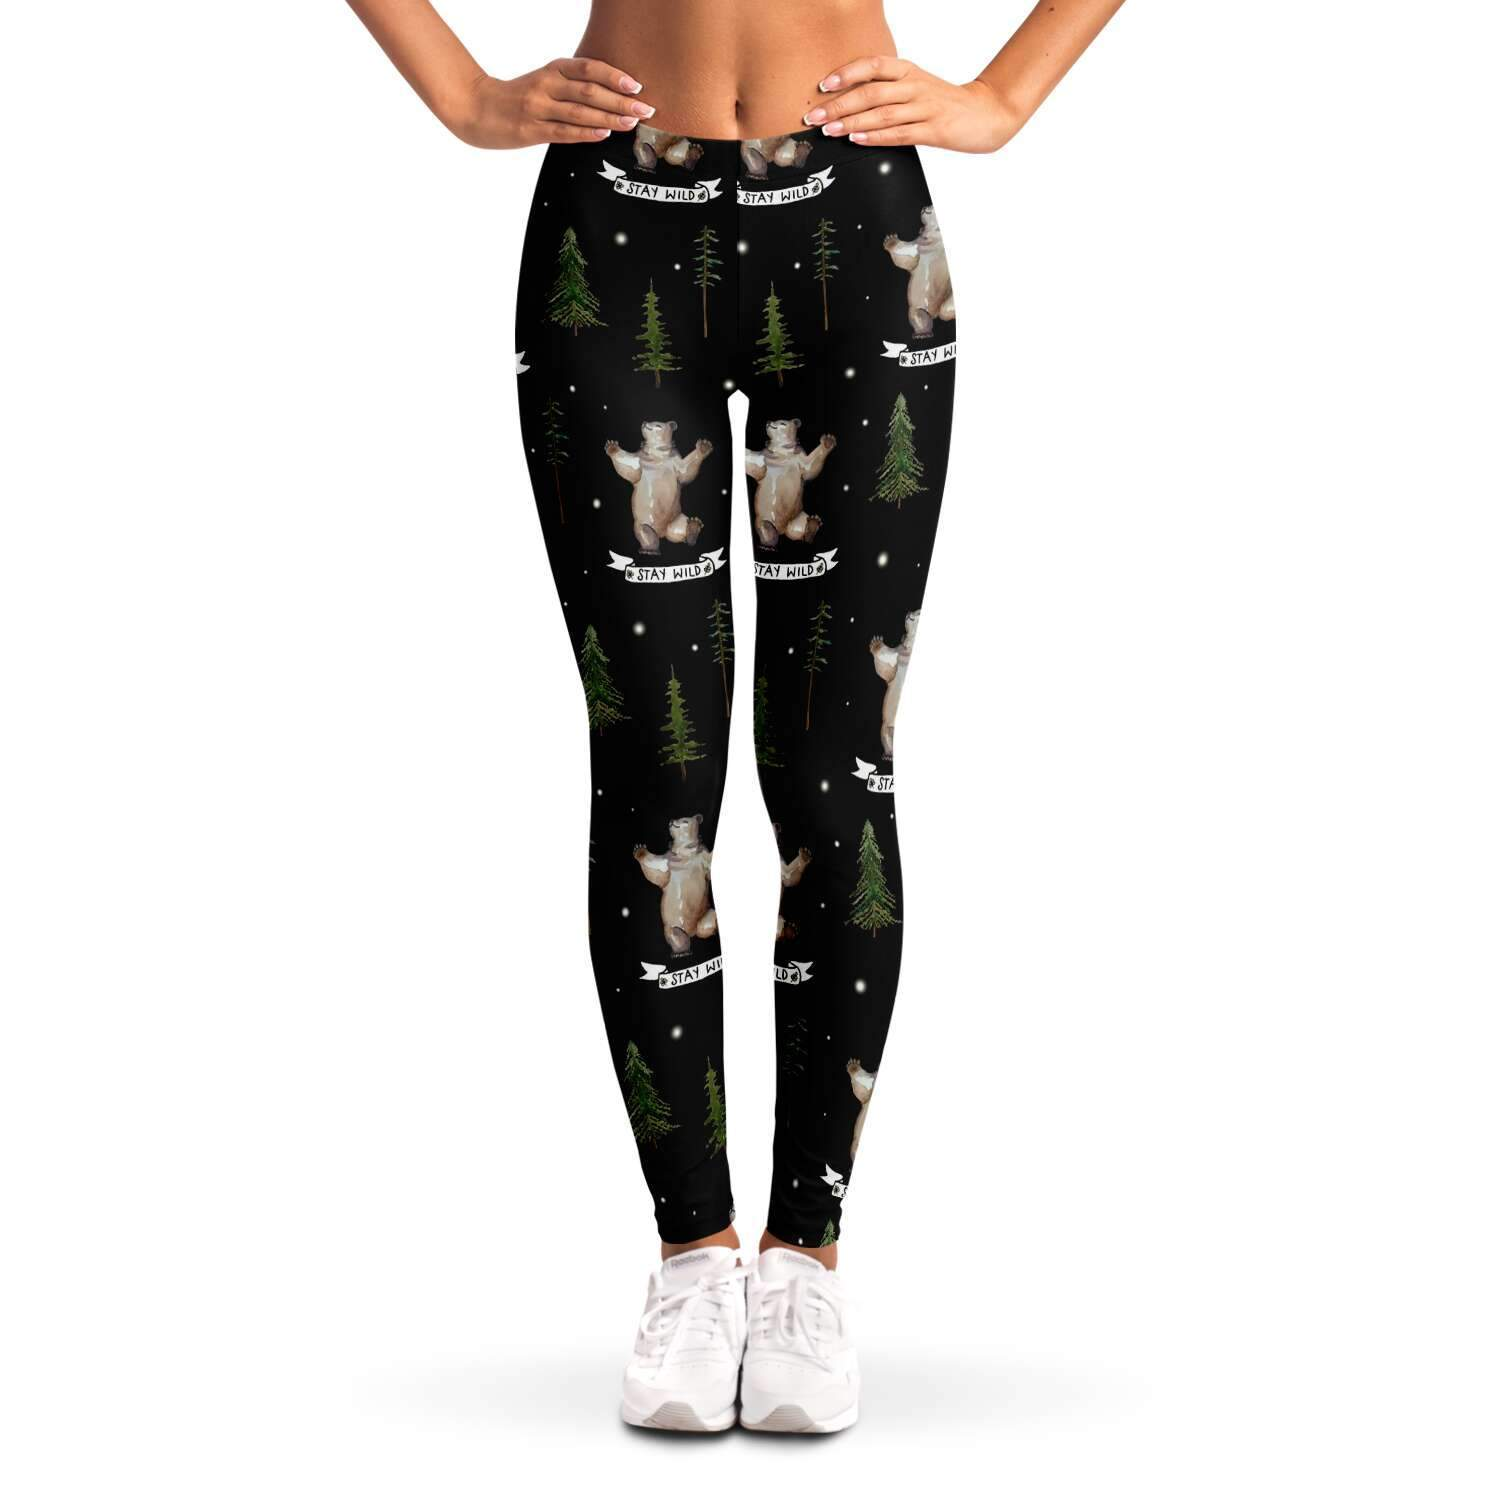 Stay wild bears Ladies Leggings - Fair Dinkum Fashion